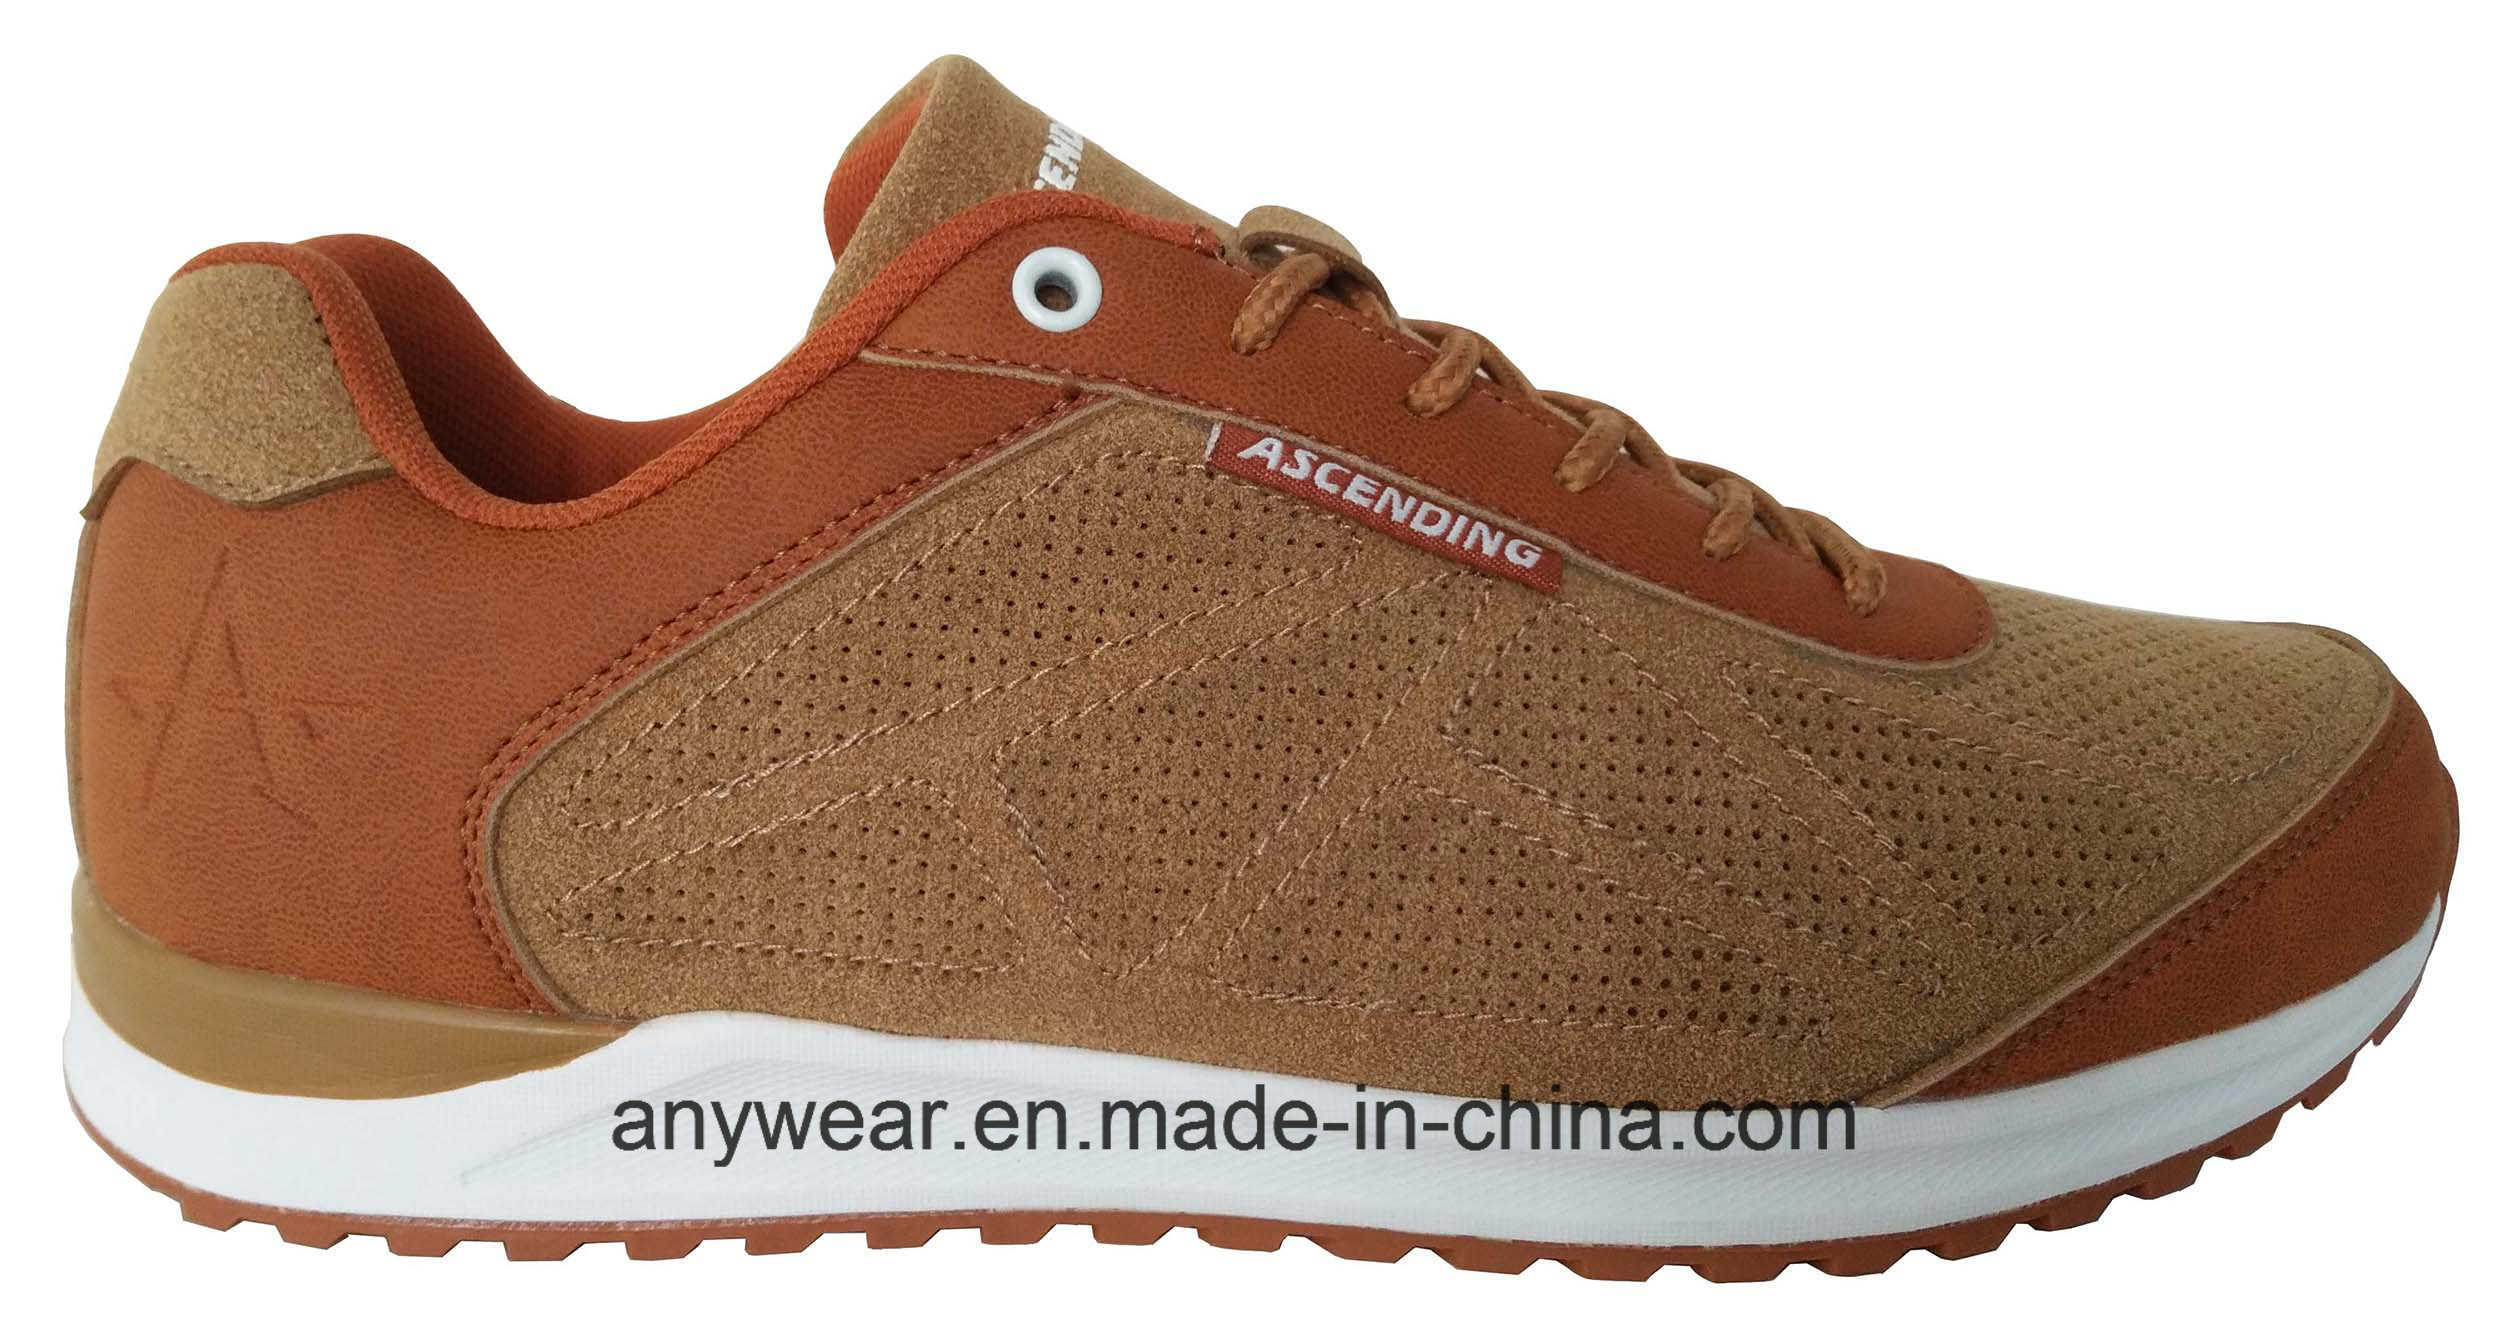 Casual Leather Footwear Men Leisure and Comfort Shoes (816-4986)